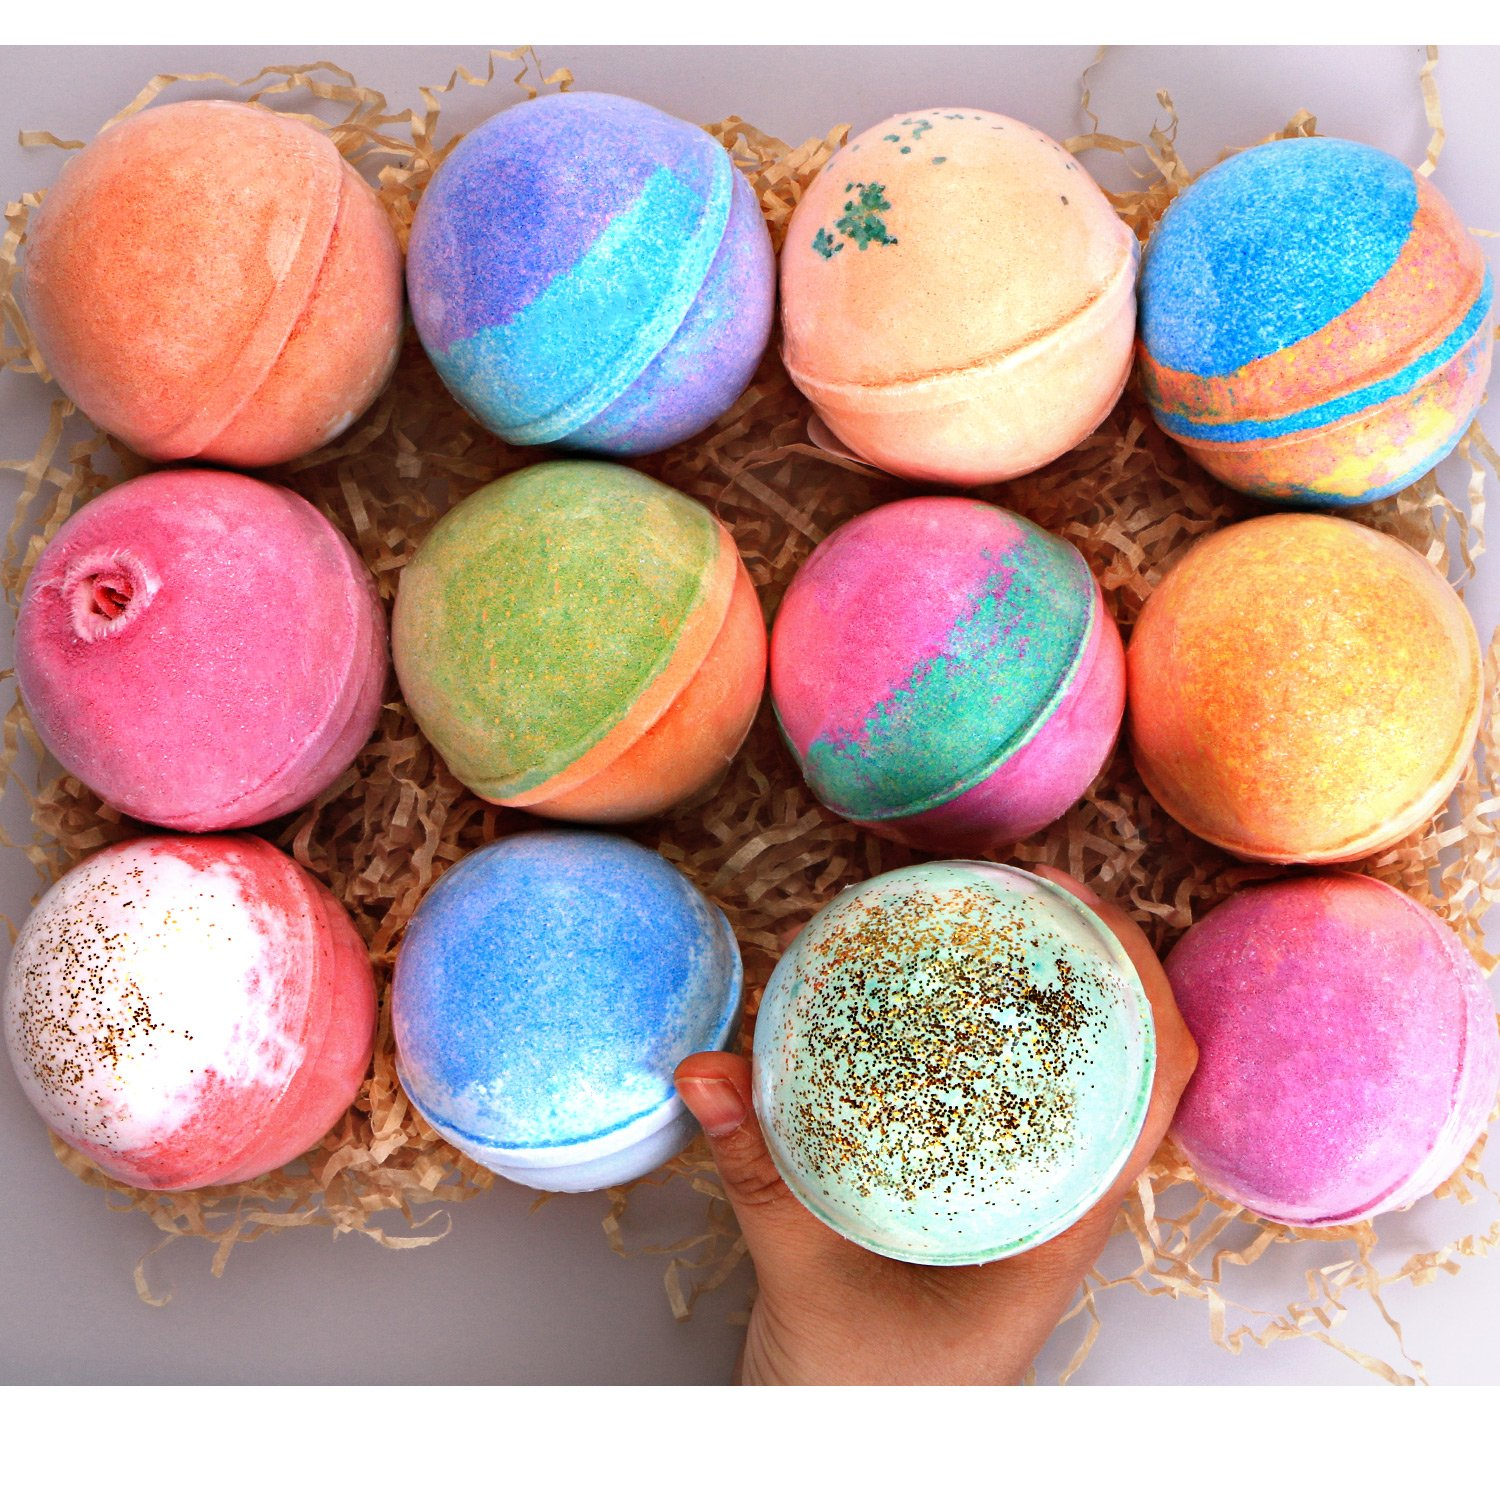 Bath Bomb Gift Set 12 Huge - 5Oz each - 100% Handmade with All Natural and Organic Ingredients - Perfect gift for her, mom, women, girl, girlfriend